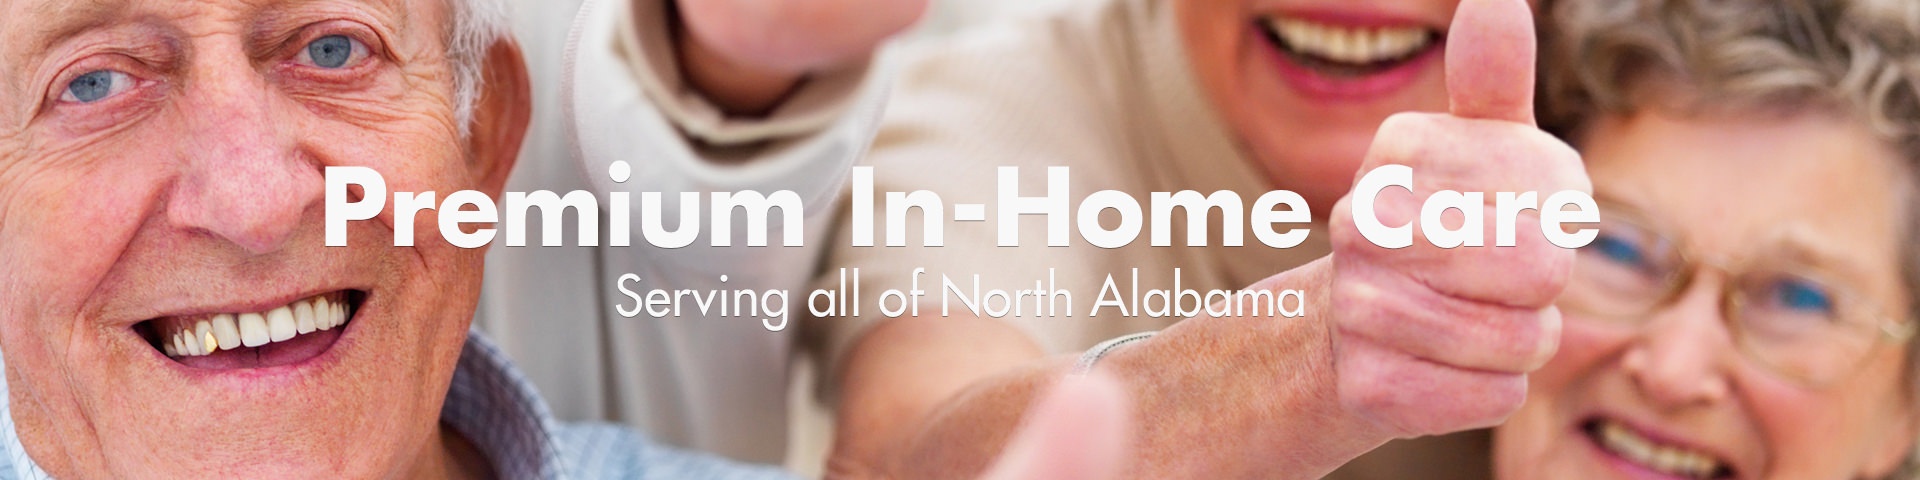 Premium In-Home Care - Serving all of North Alabama